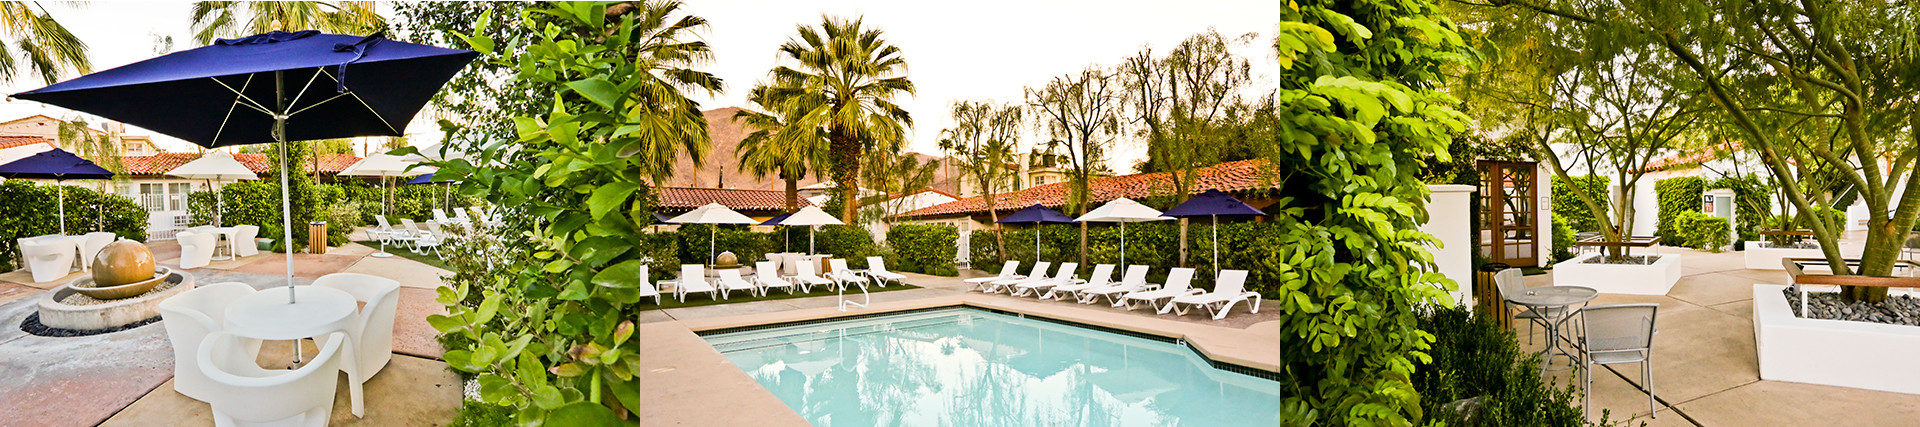 Alcazar Hotel Palm Springs 7